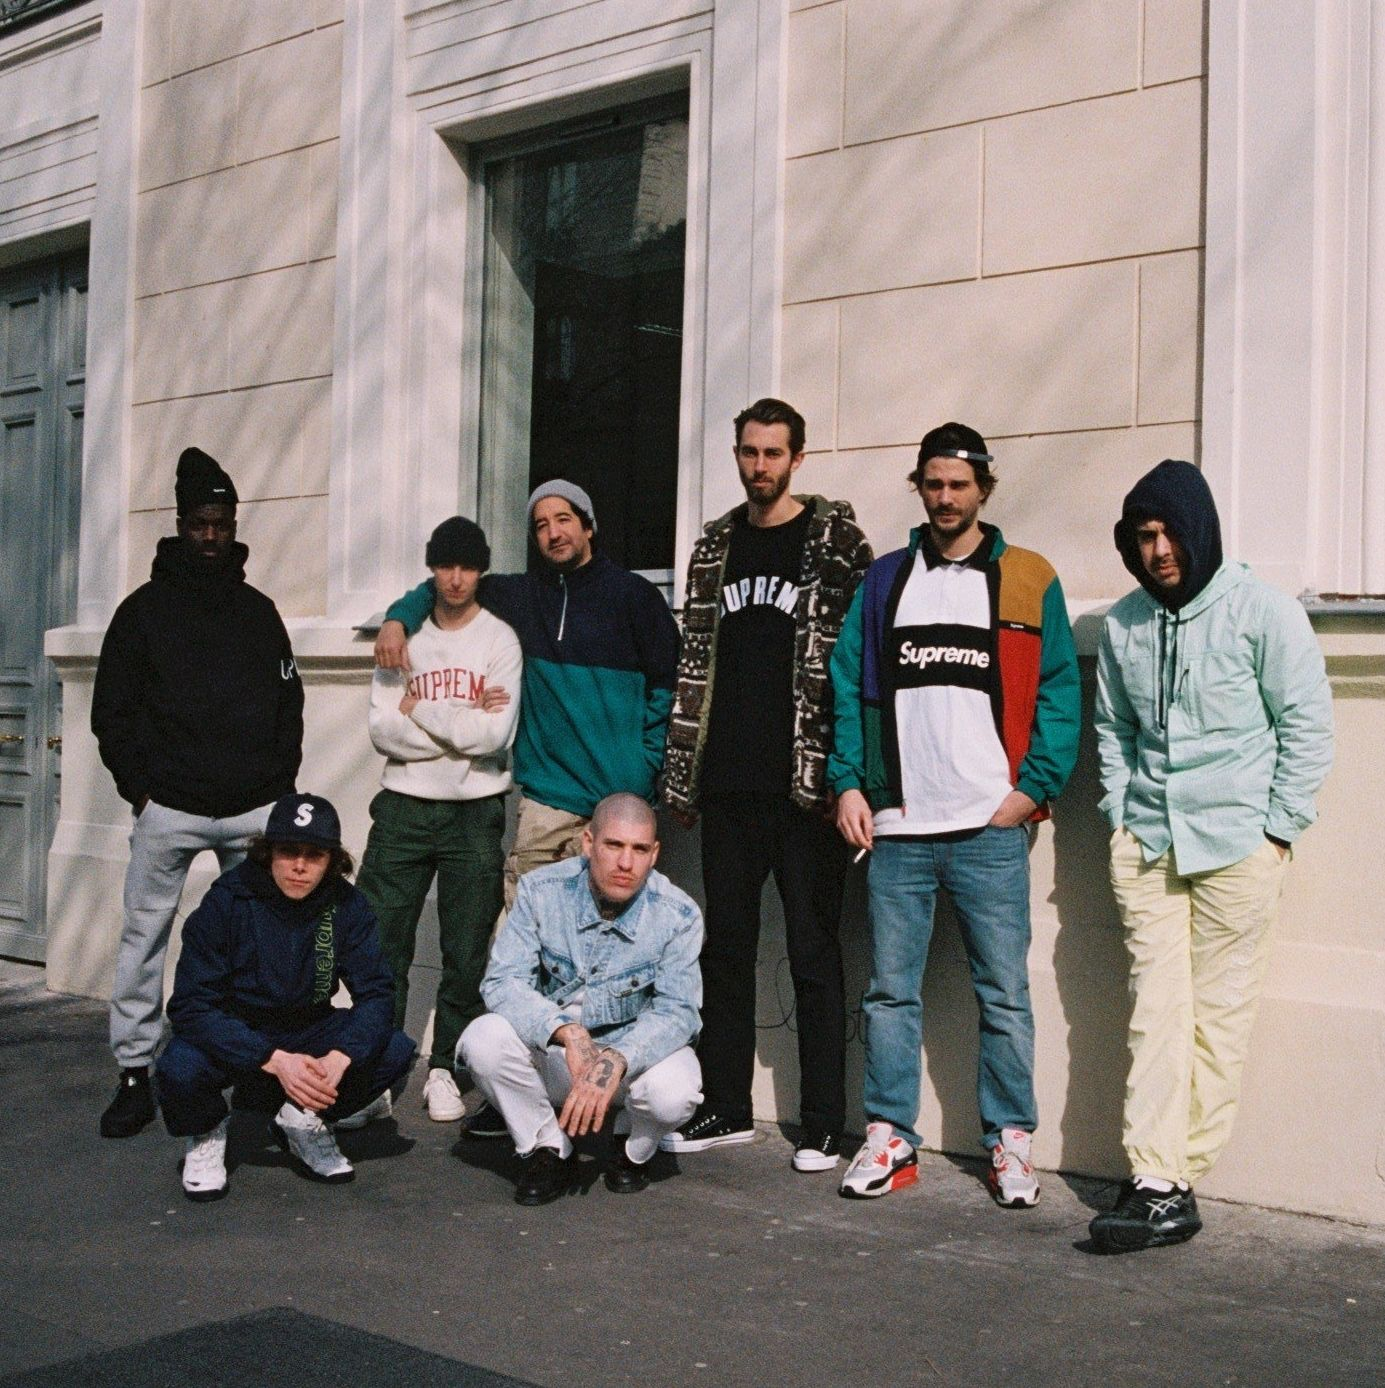 As Supreme arrive in Paris, we get to know the city's homegrown skate stars and boys of the store.